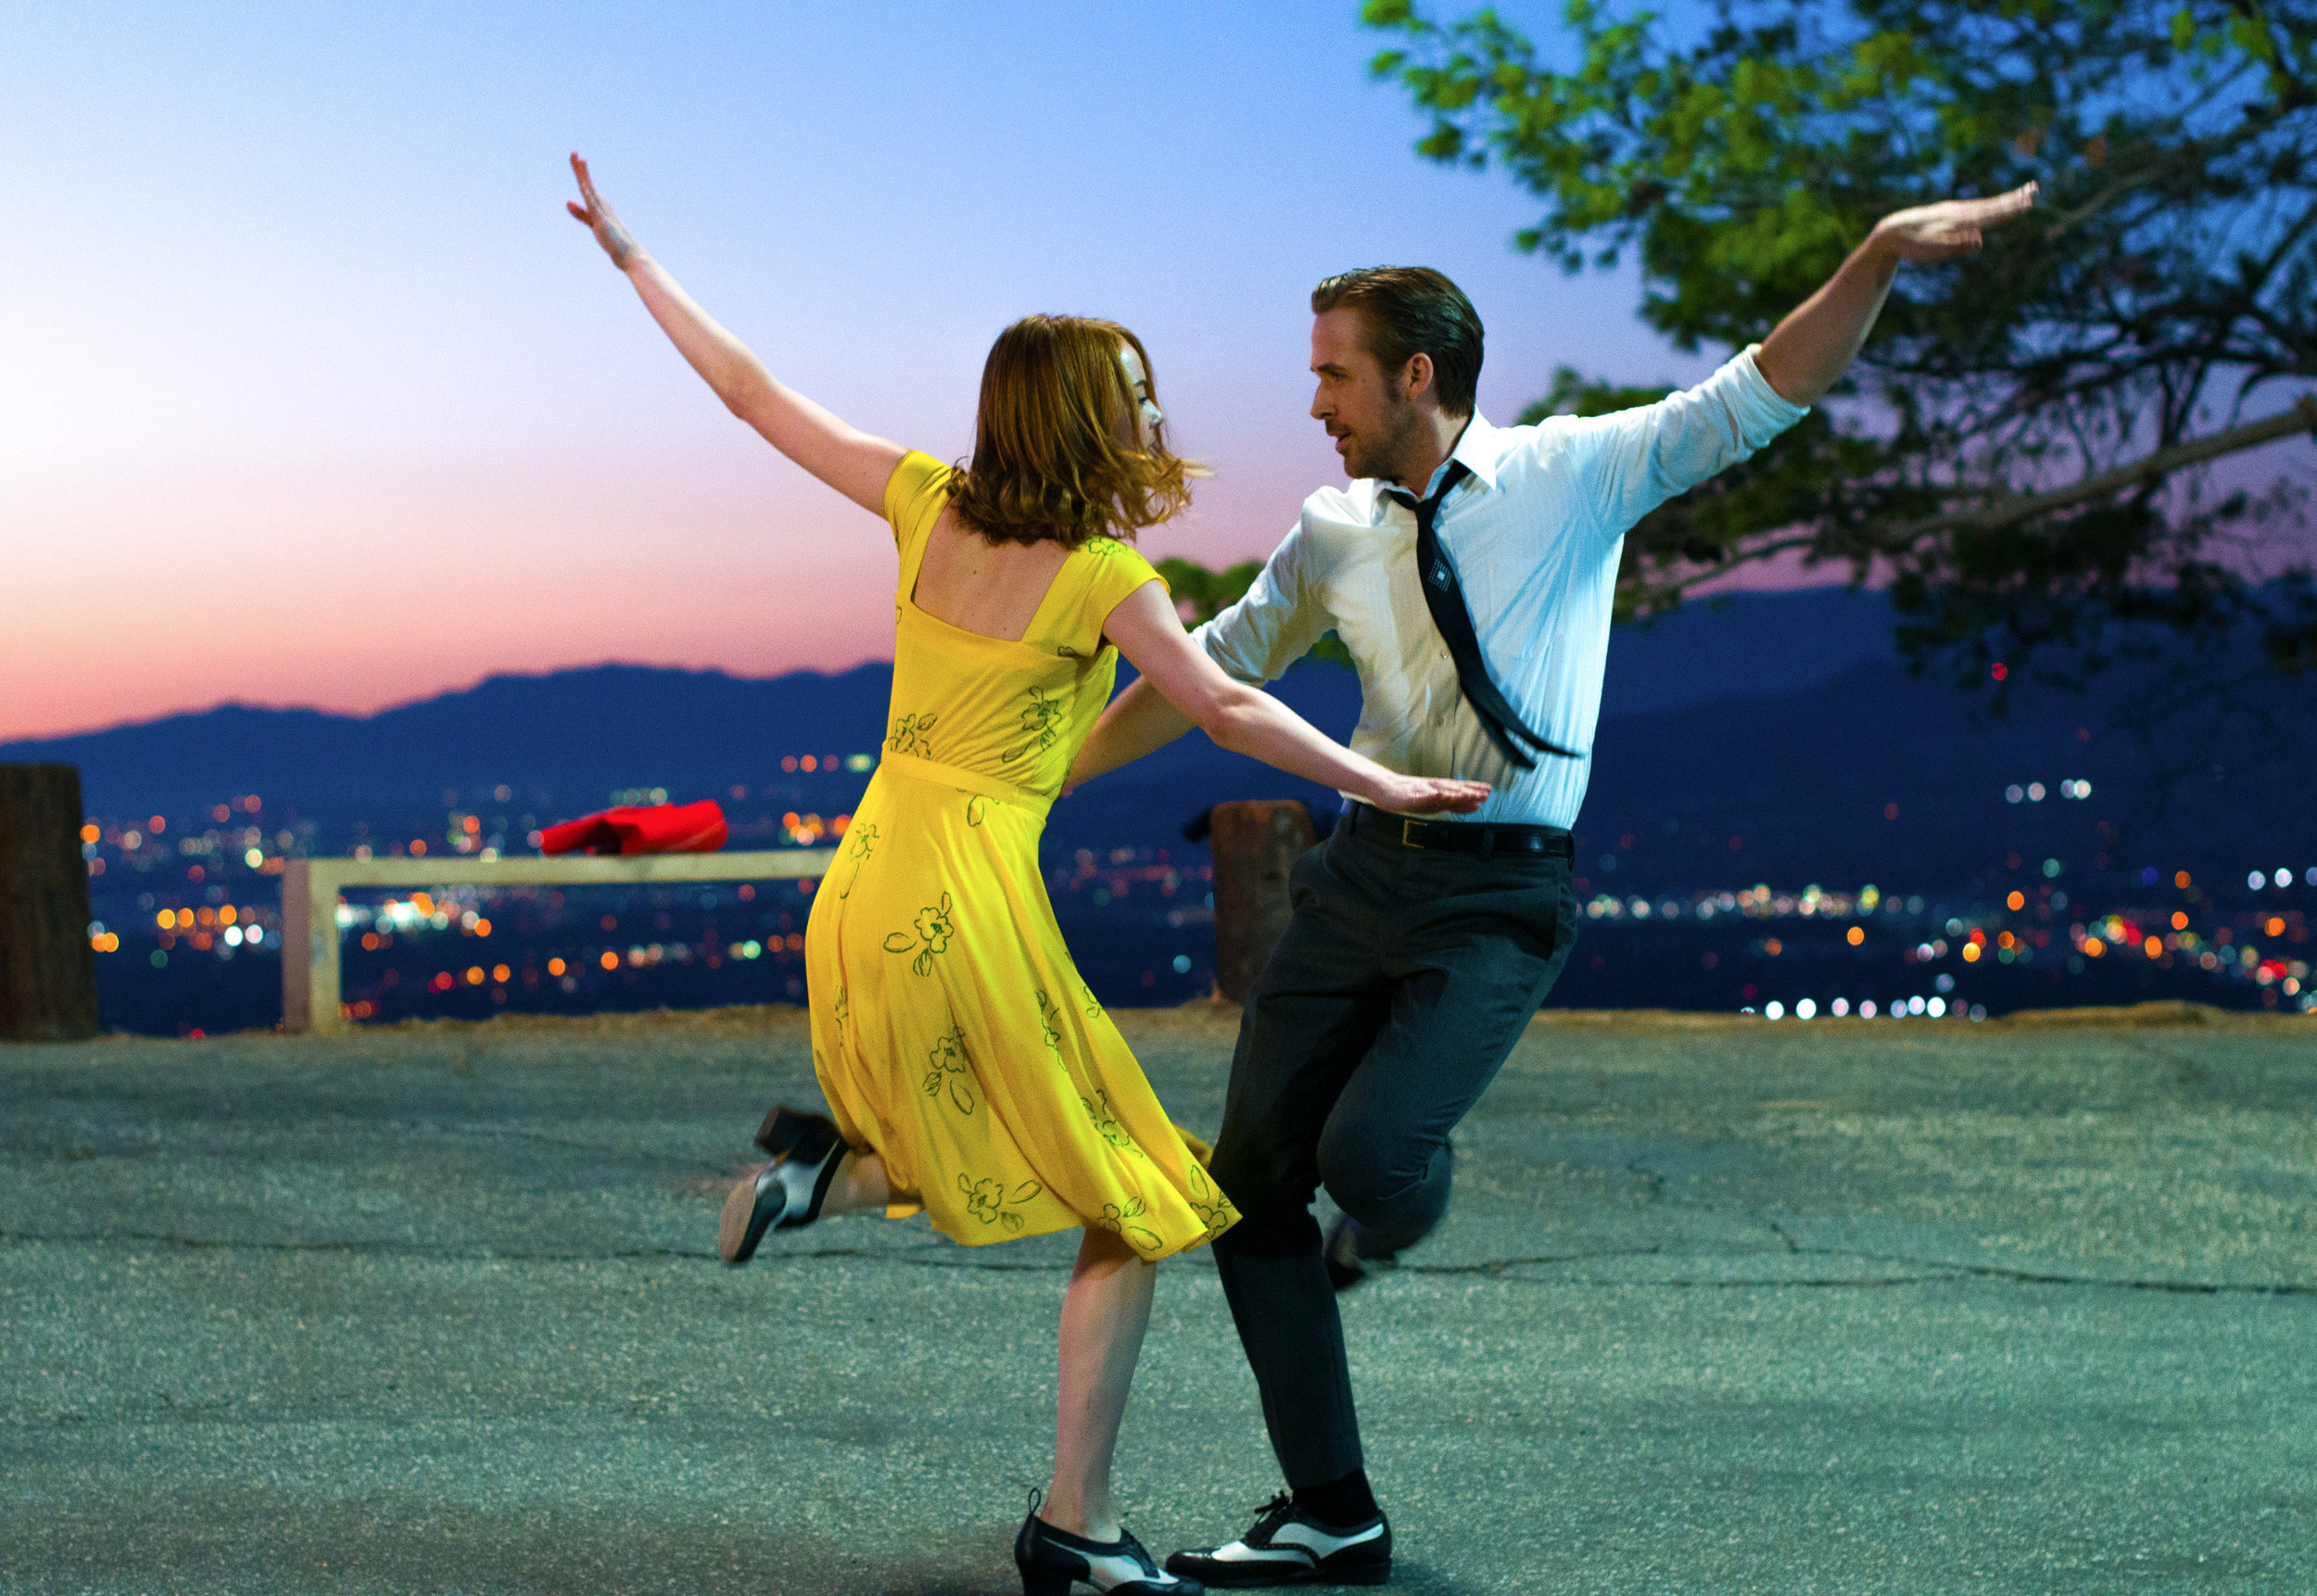 Emma Stone and Ryan Gosling star in 'La La Land,' opening in theaters Dec. 9. (Photo courtesy of Summit Entertainment)